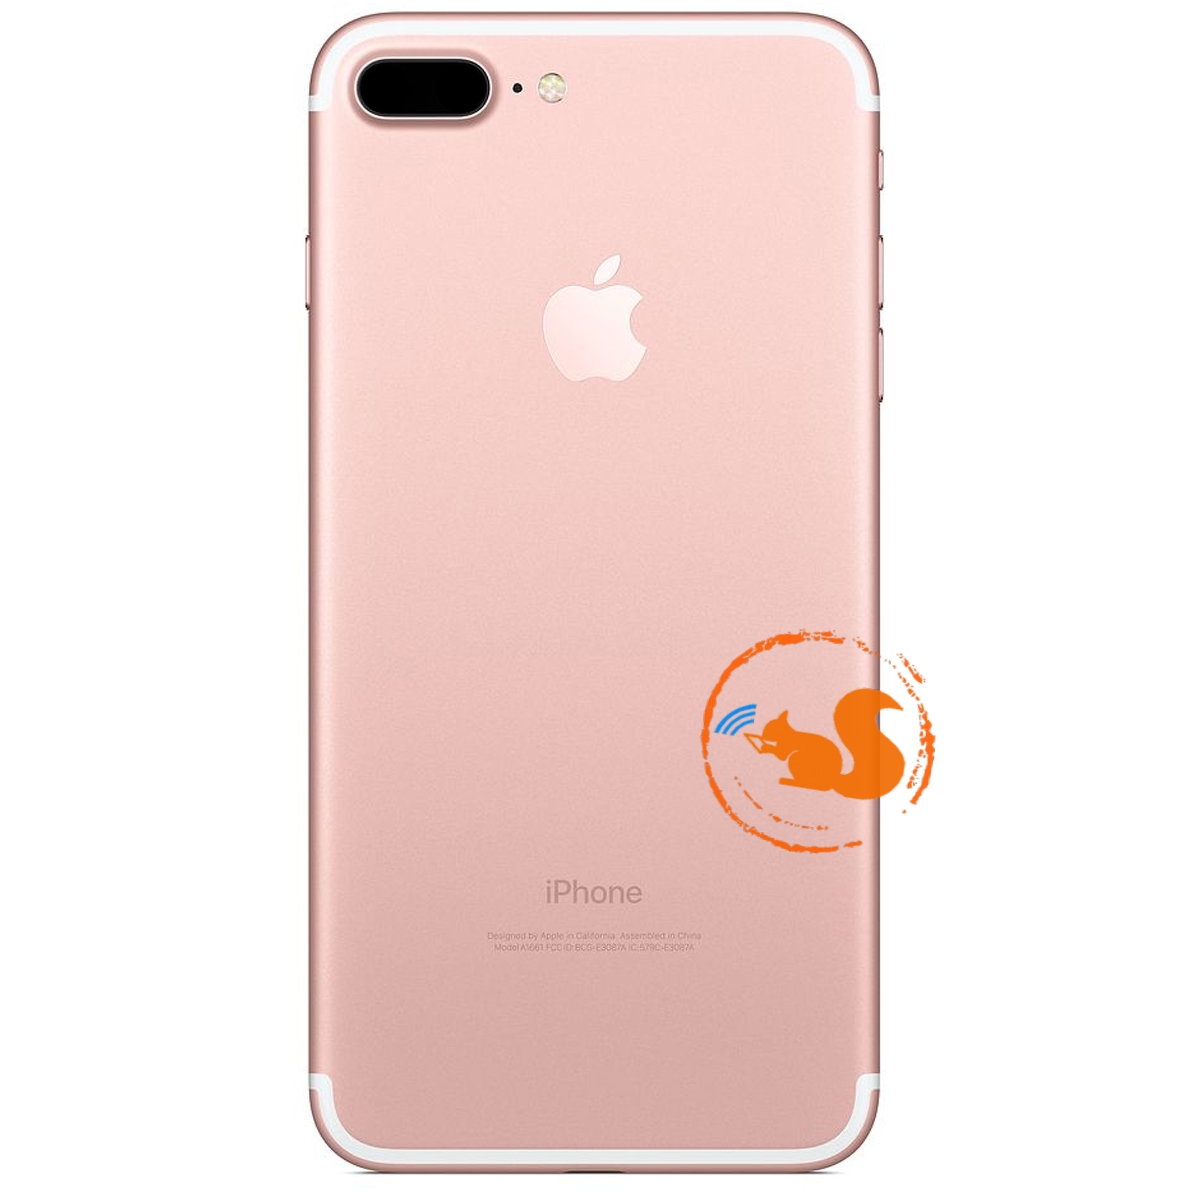 Xuong-vo-iphone-7Plus-Rose-Gold